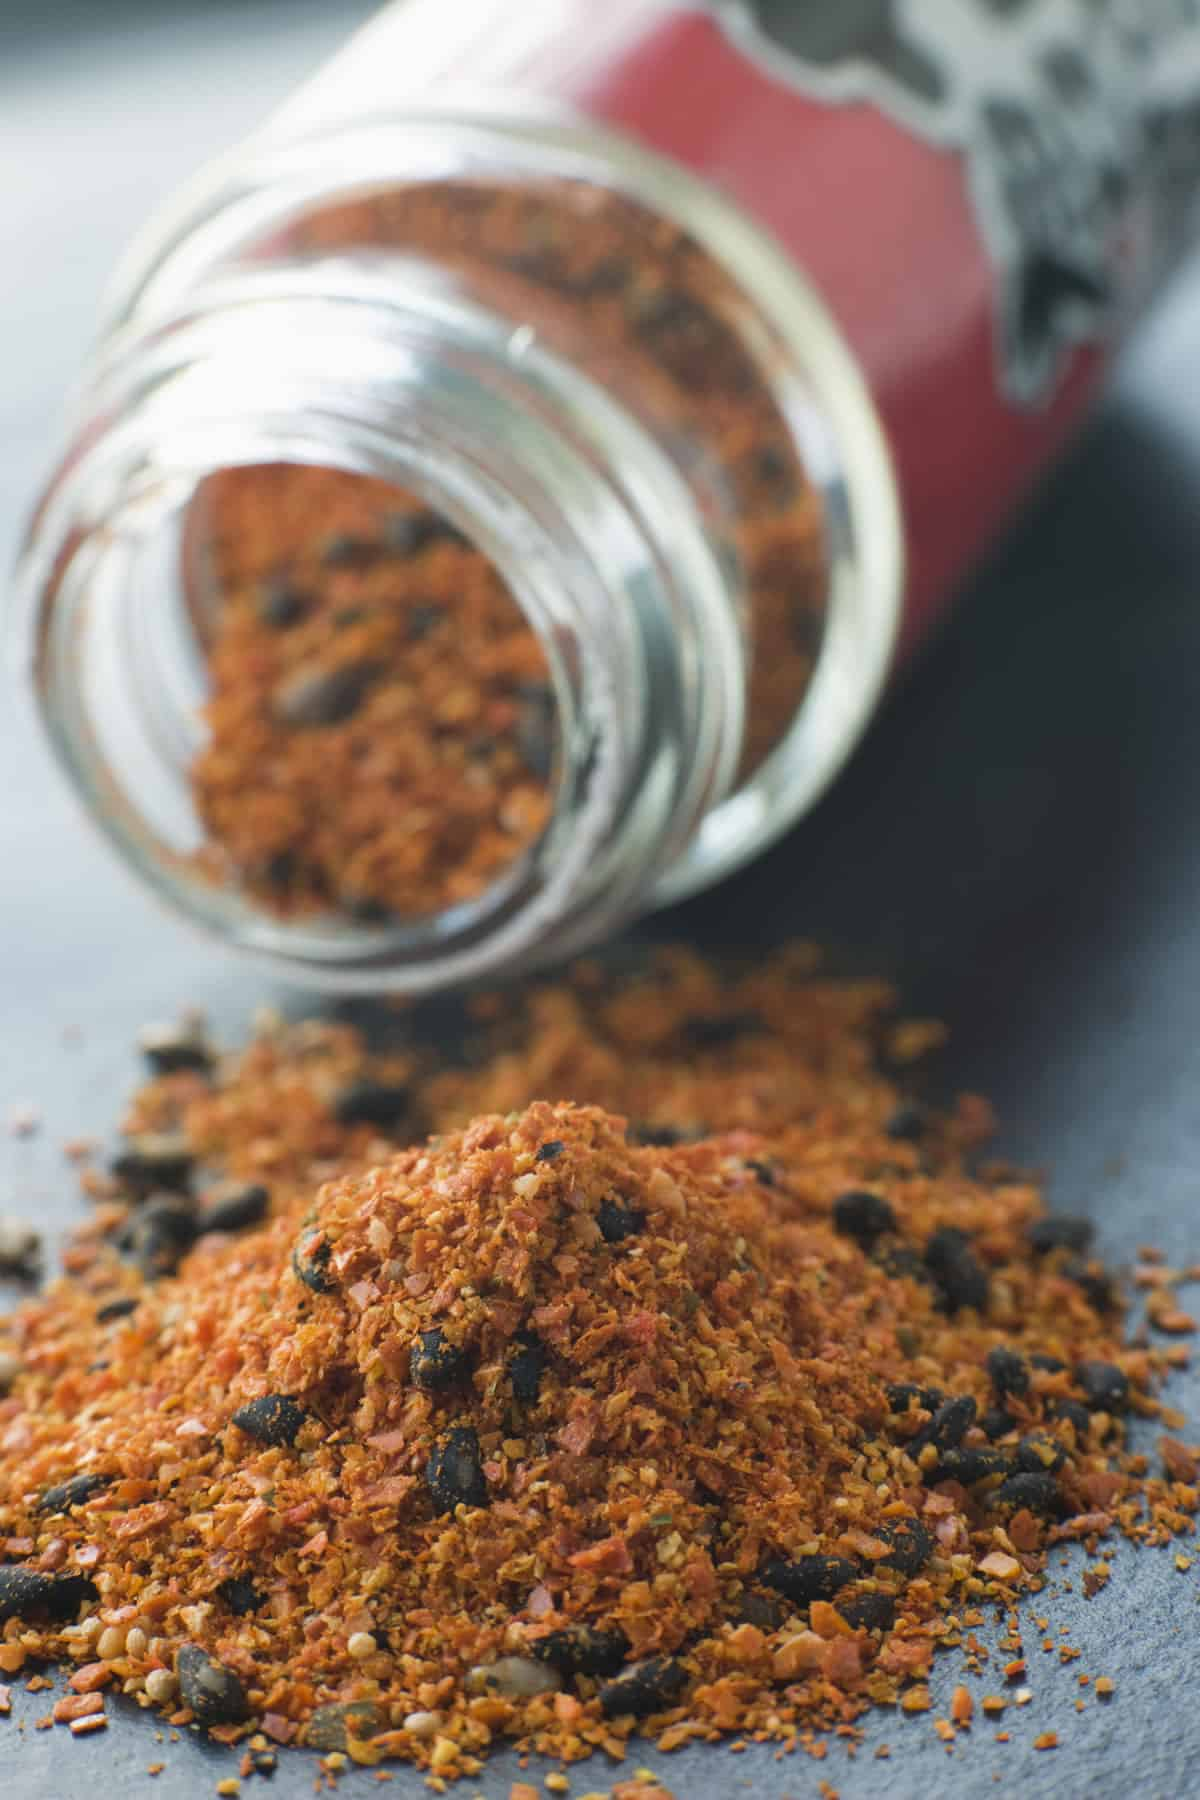 Togarashi: Popular Japanese Spice Blend